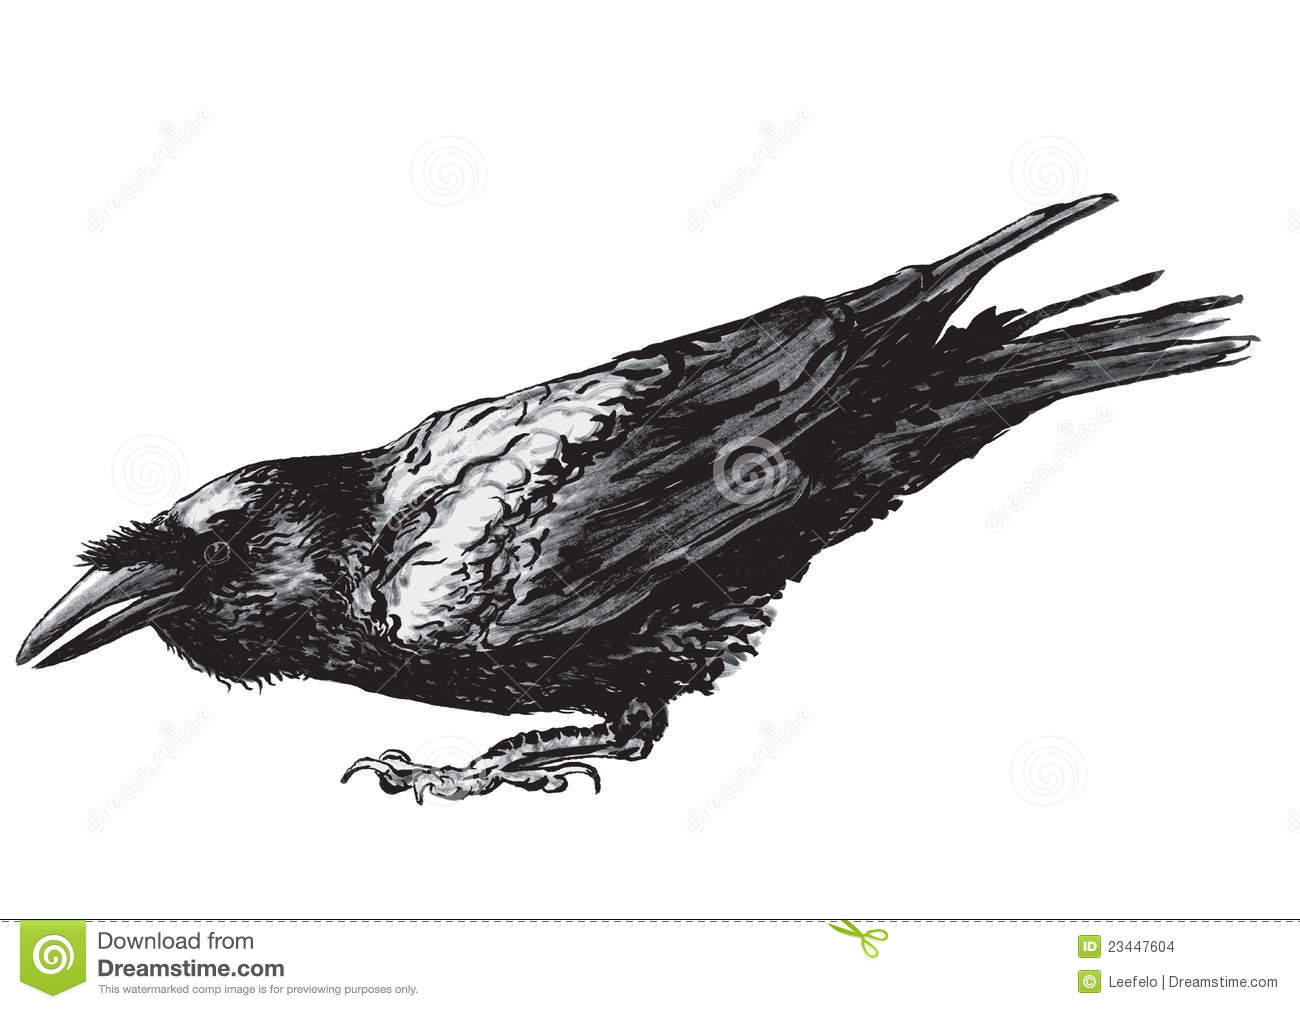 vectorized drawing of a crouching raven with it's beak open.